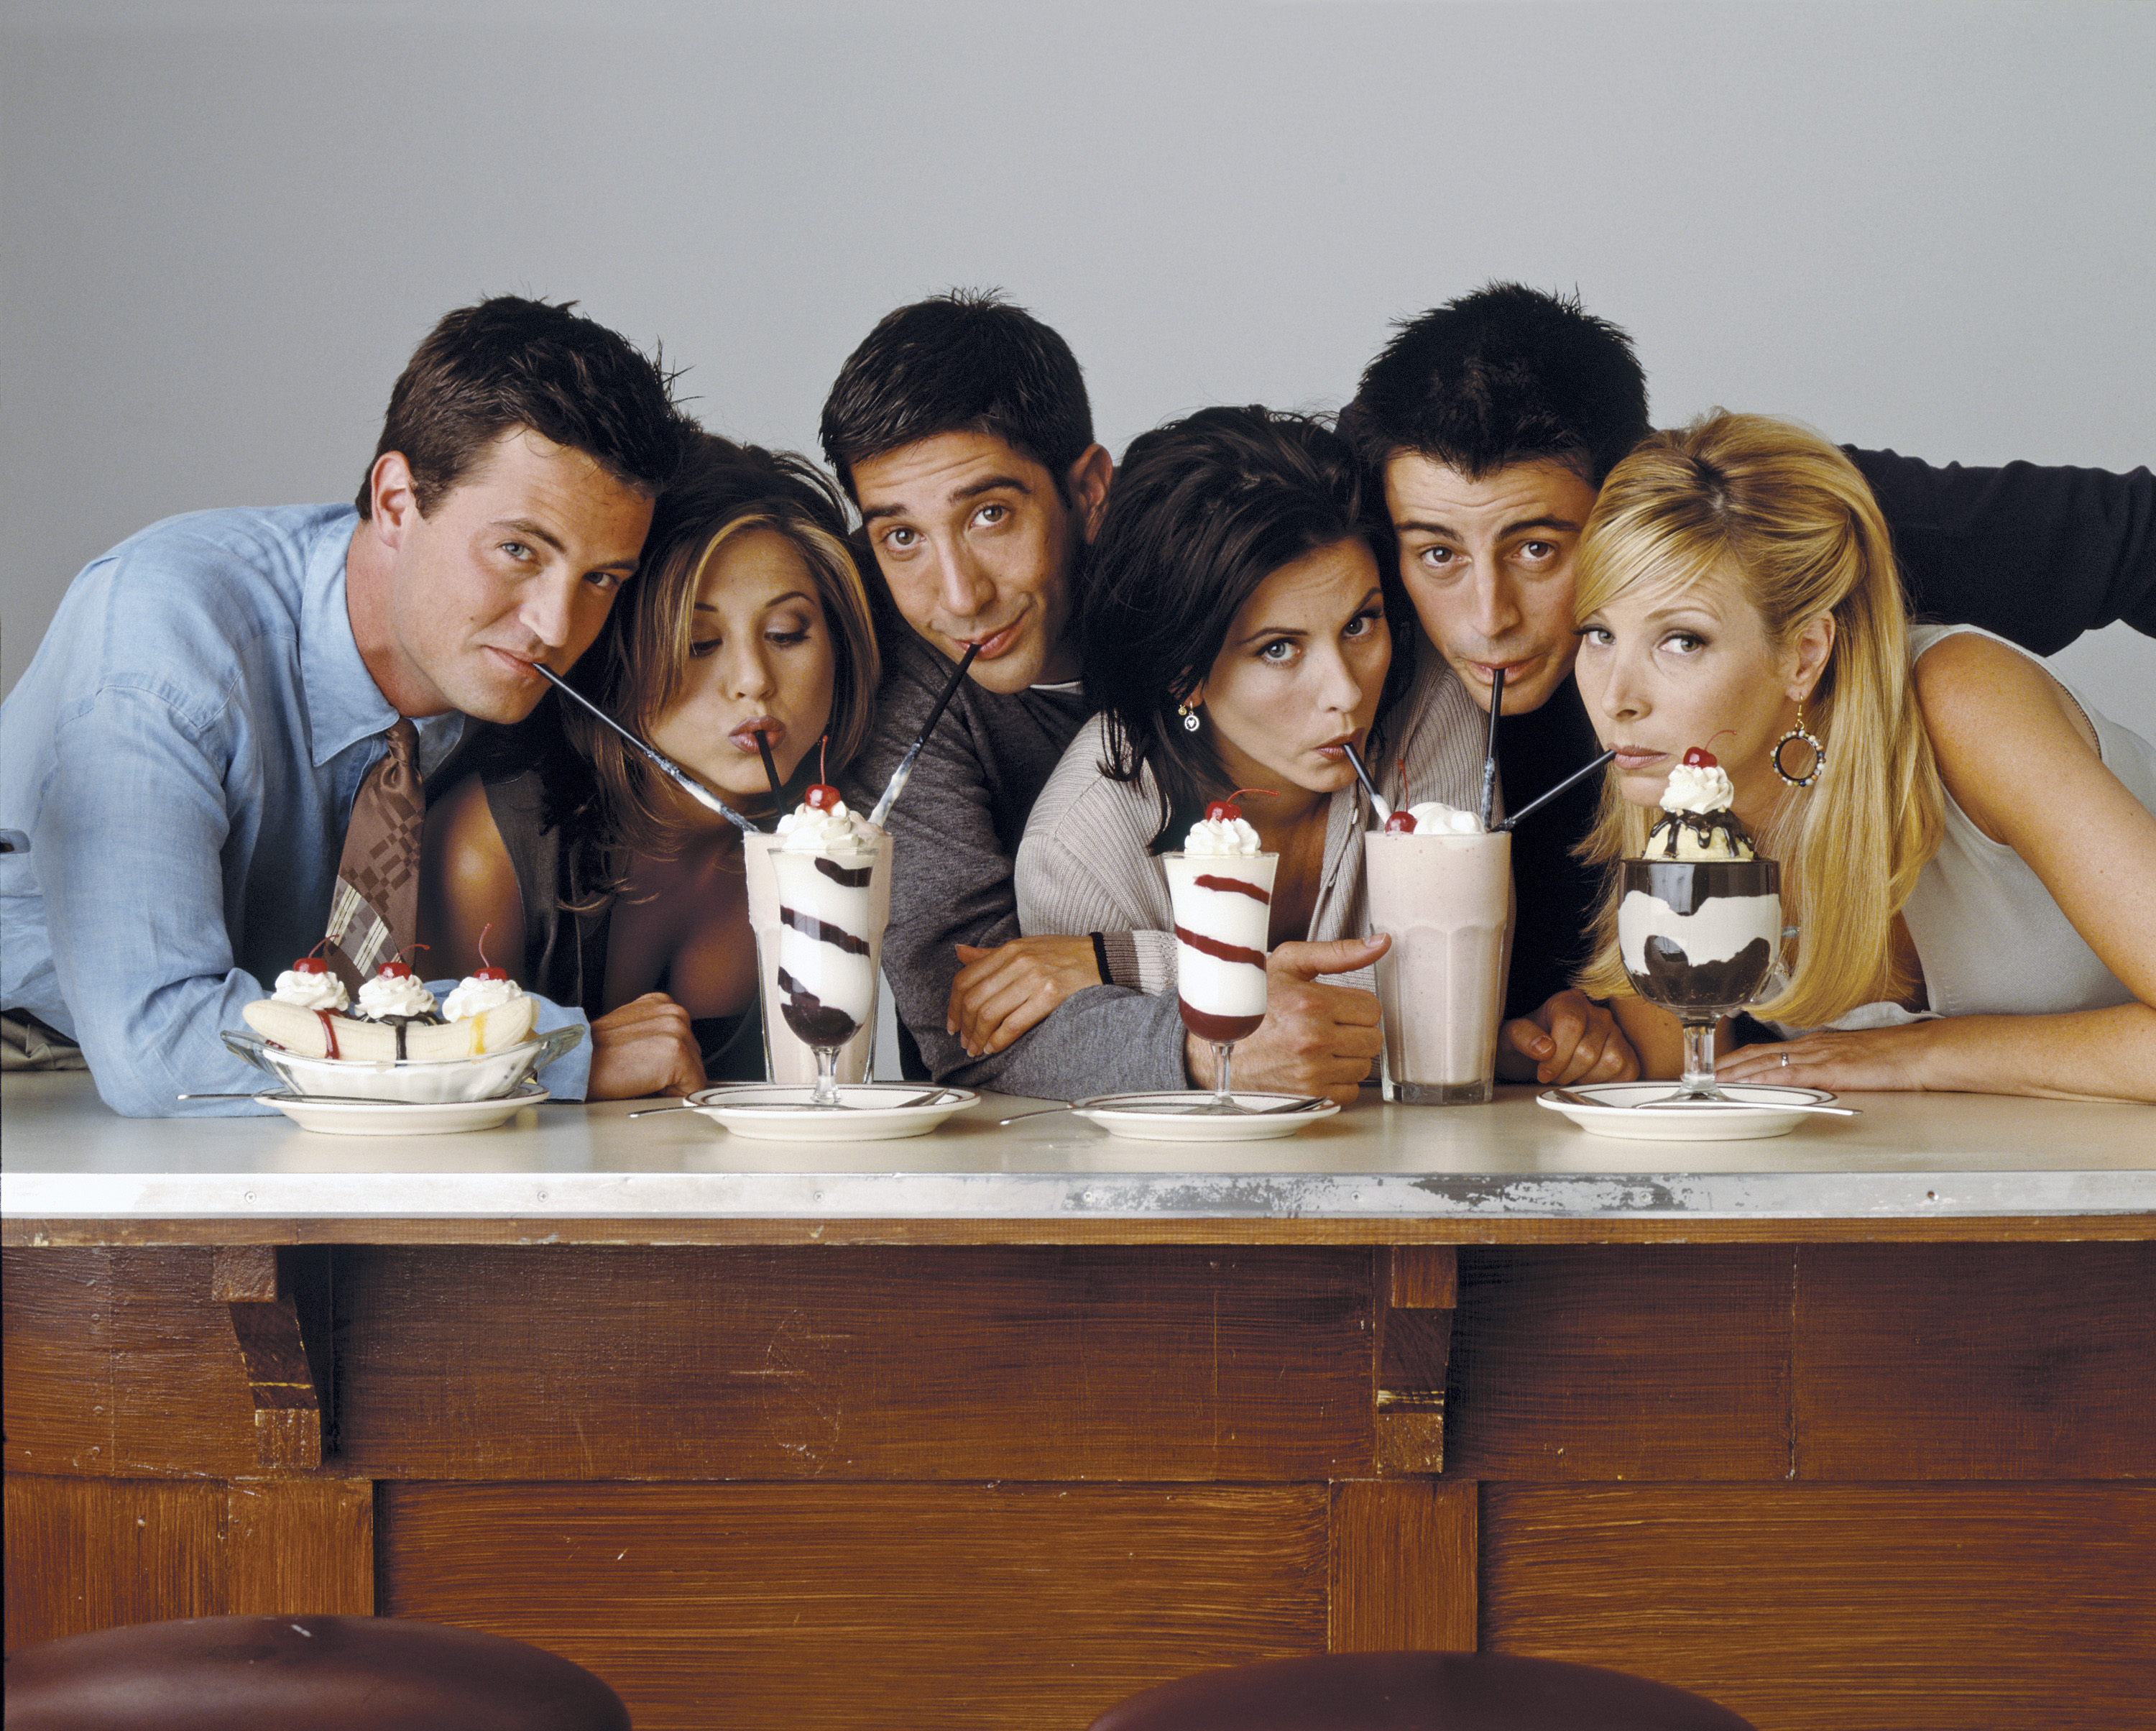 FRIENDS -- Pictured: (l-r) Matthew Perry as Chandler Bing, Jennifer Aniston as Rachel Green, David Schwimmer as Ross Geller, Courteney Cox as Monica Geller, Matt Le Blanc as Joey Tribbiani, Lisa Kudrow as Phoebe Buffay  (Photo by NBC/NBCU Photo Bank via Getty Images, TG)